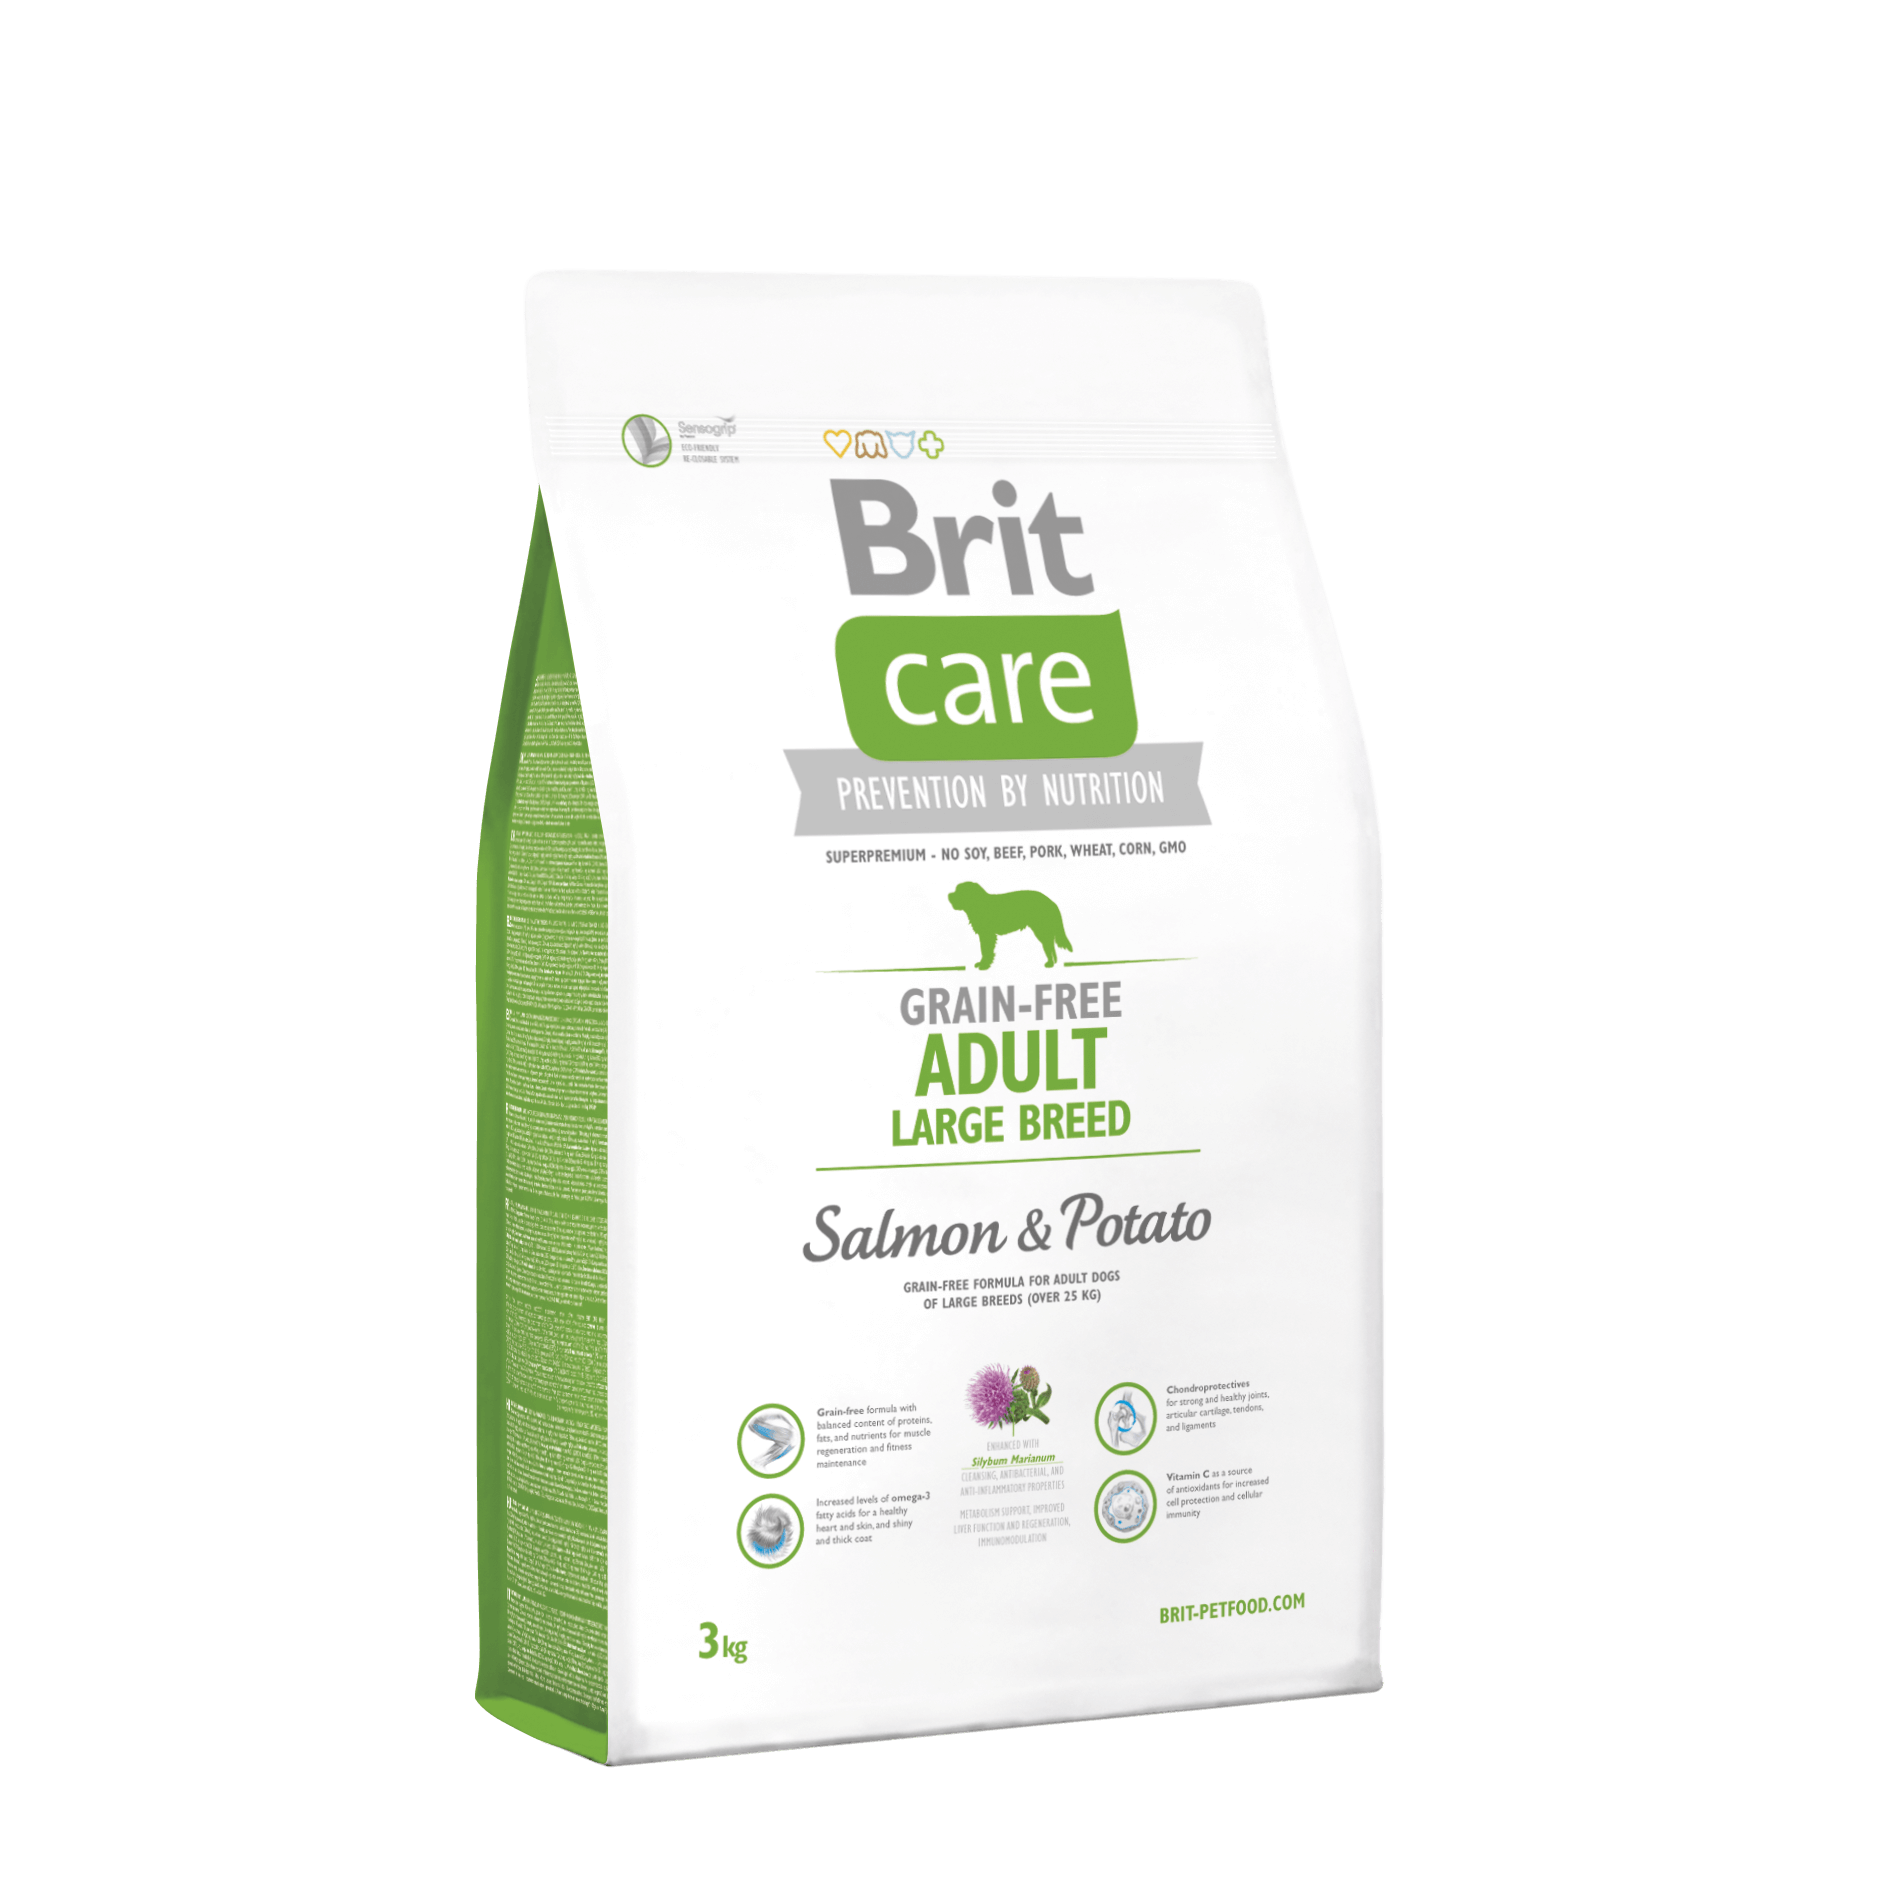 Brit Care Grain-freeAdult Large Breed Salmon & Potato